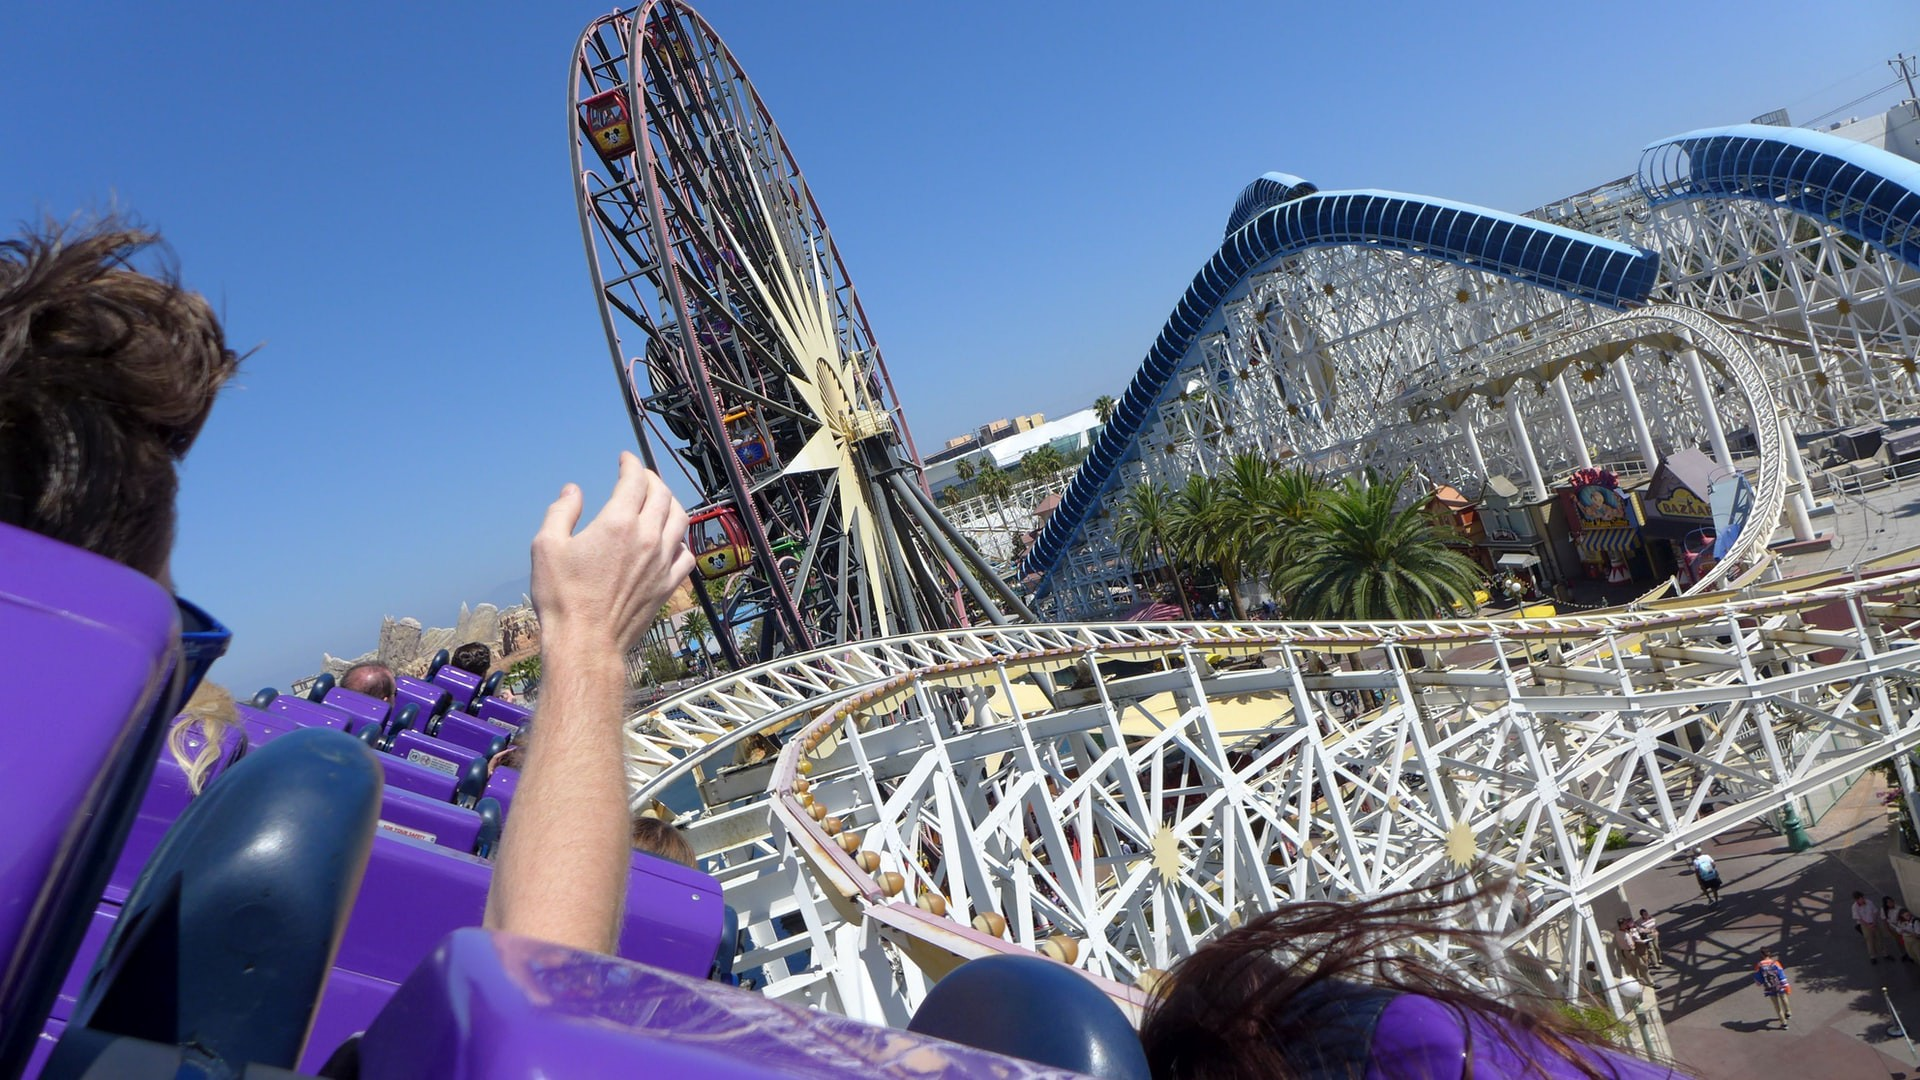 A human hand raised into the air as the human faces an unwinding roller coaster ride.